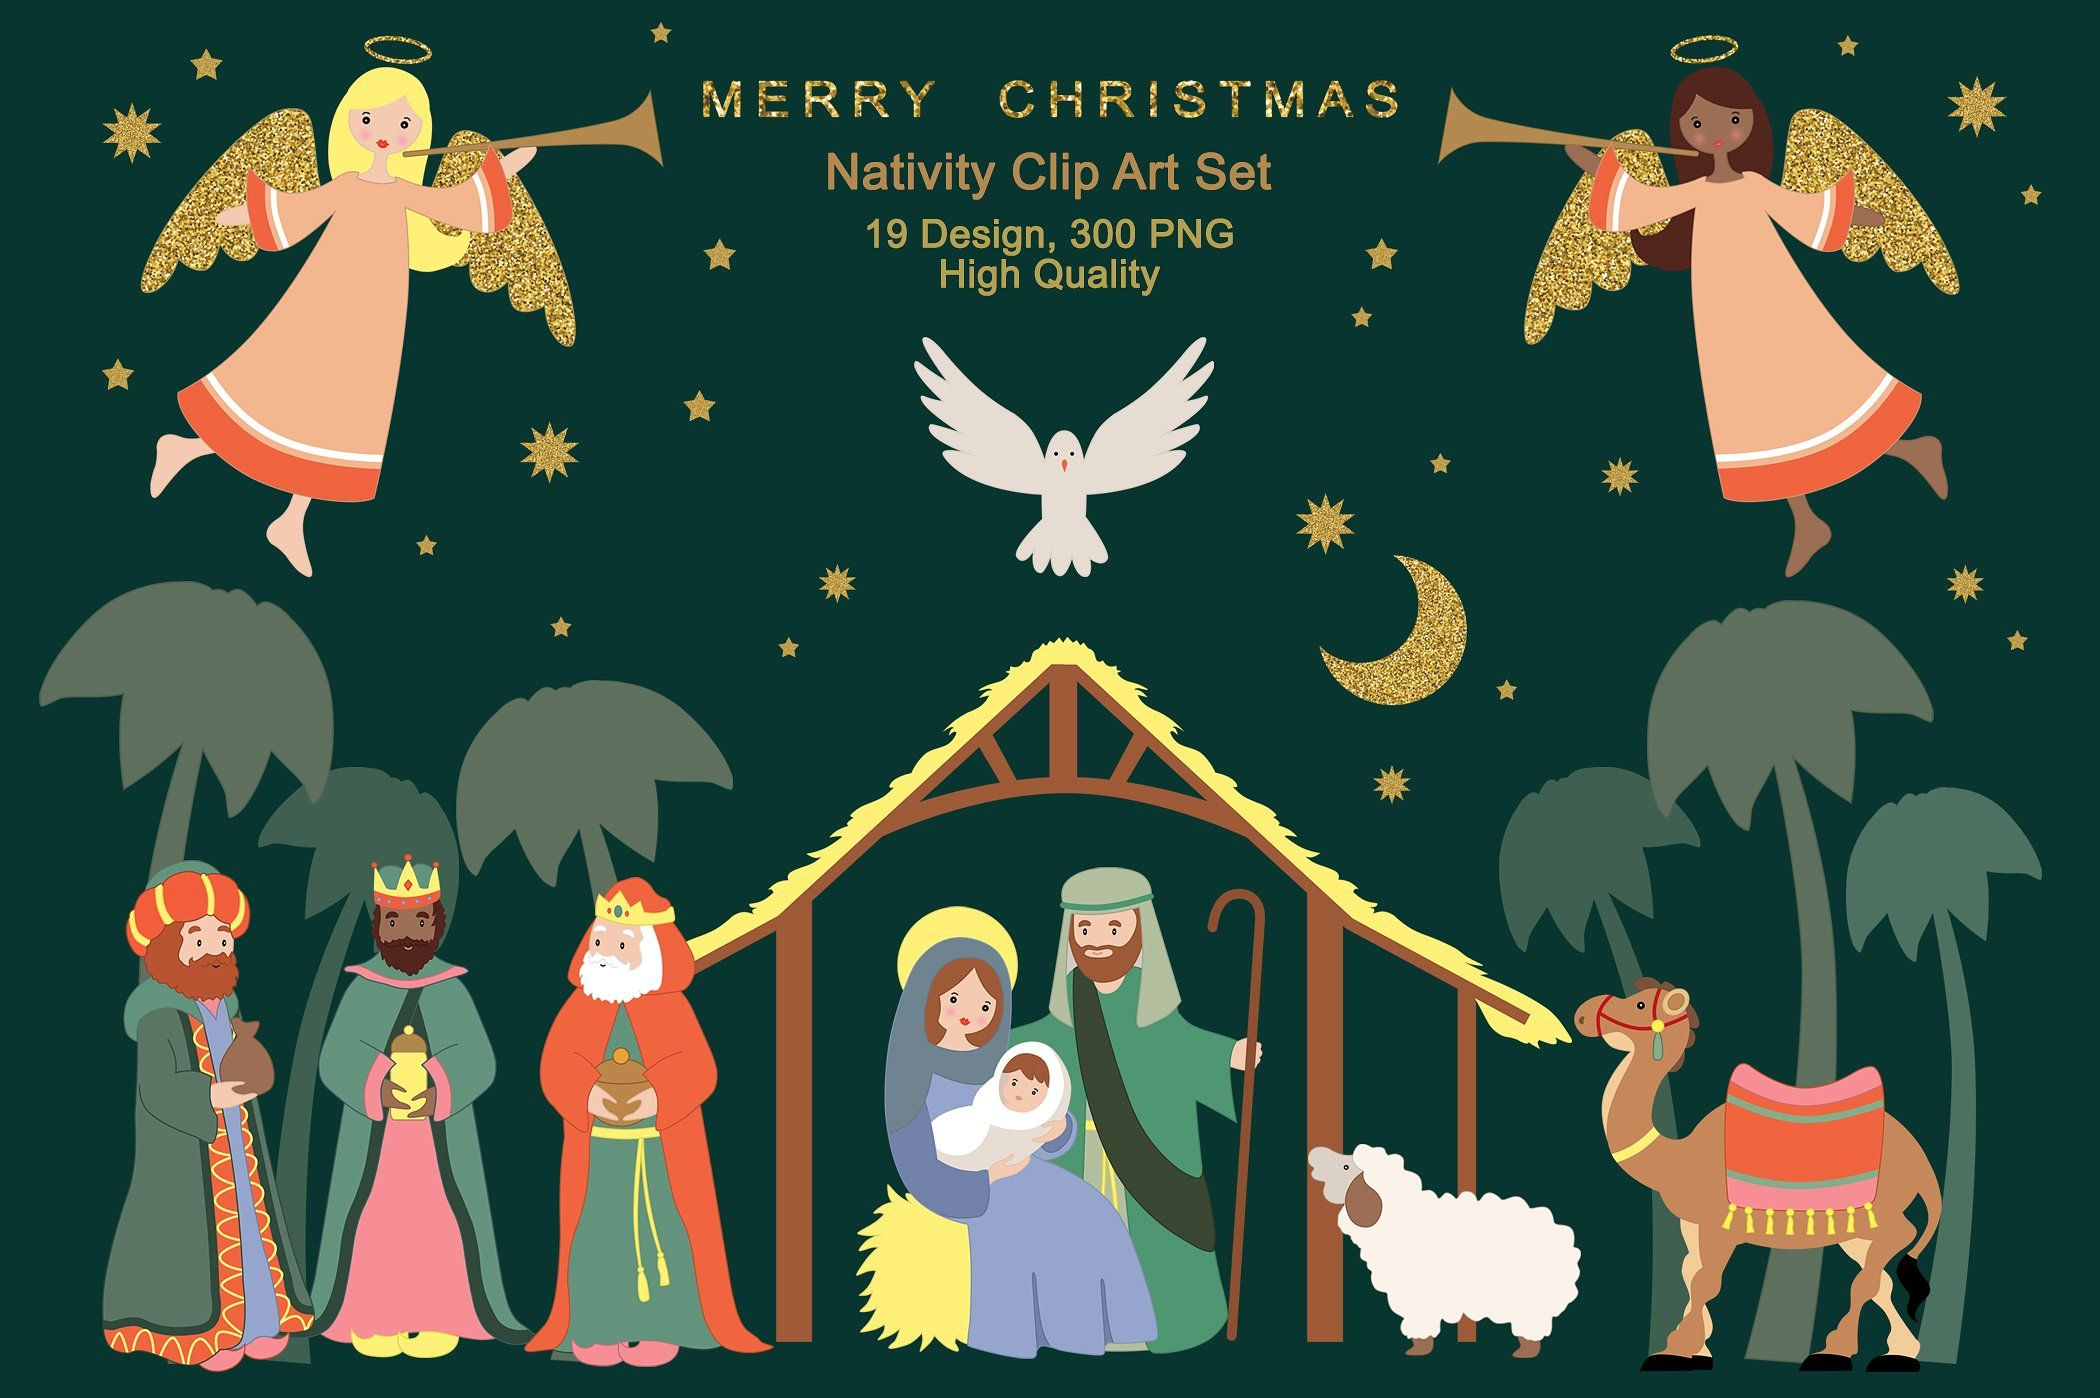 Religious Christmas Clipart.Pin On Graphic Design Photoshop